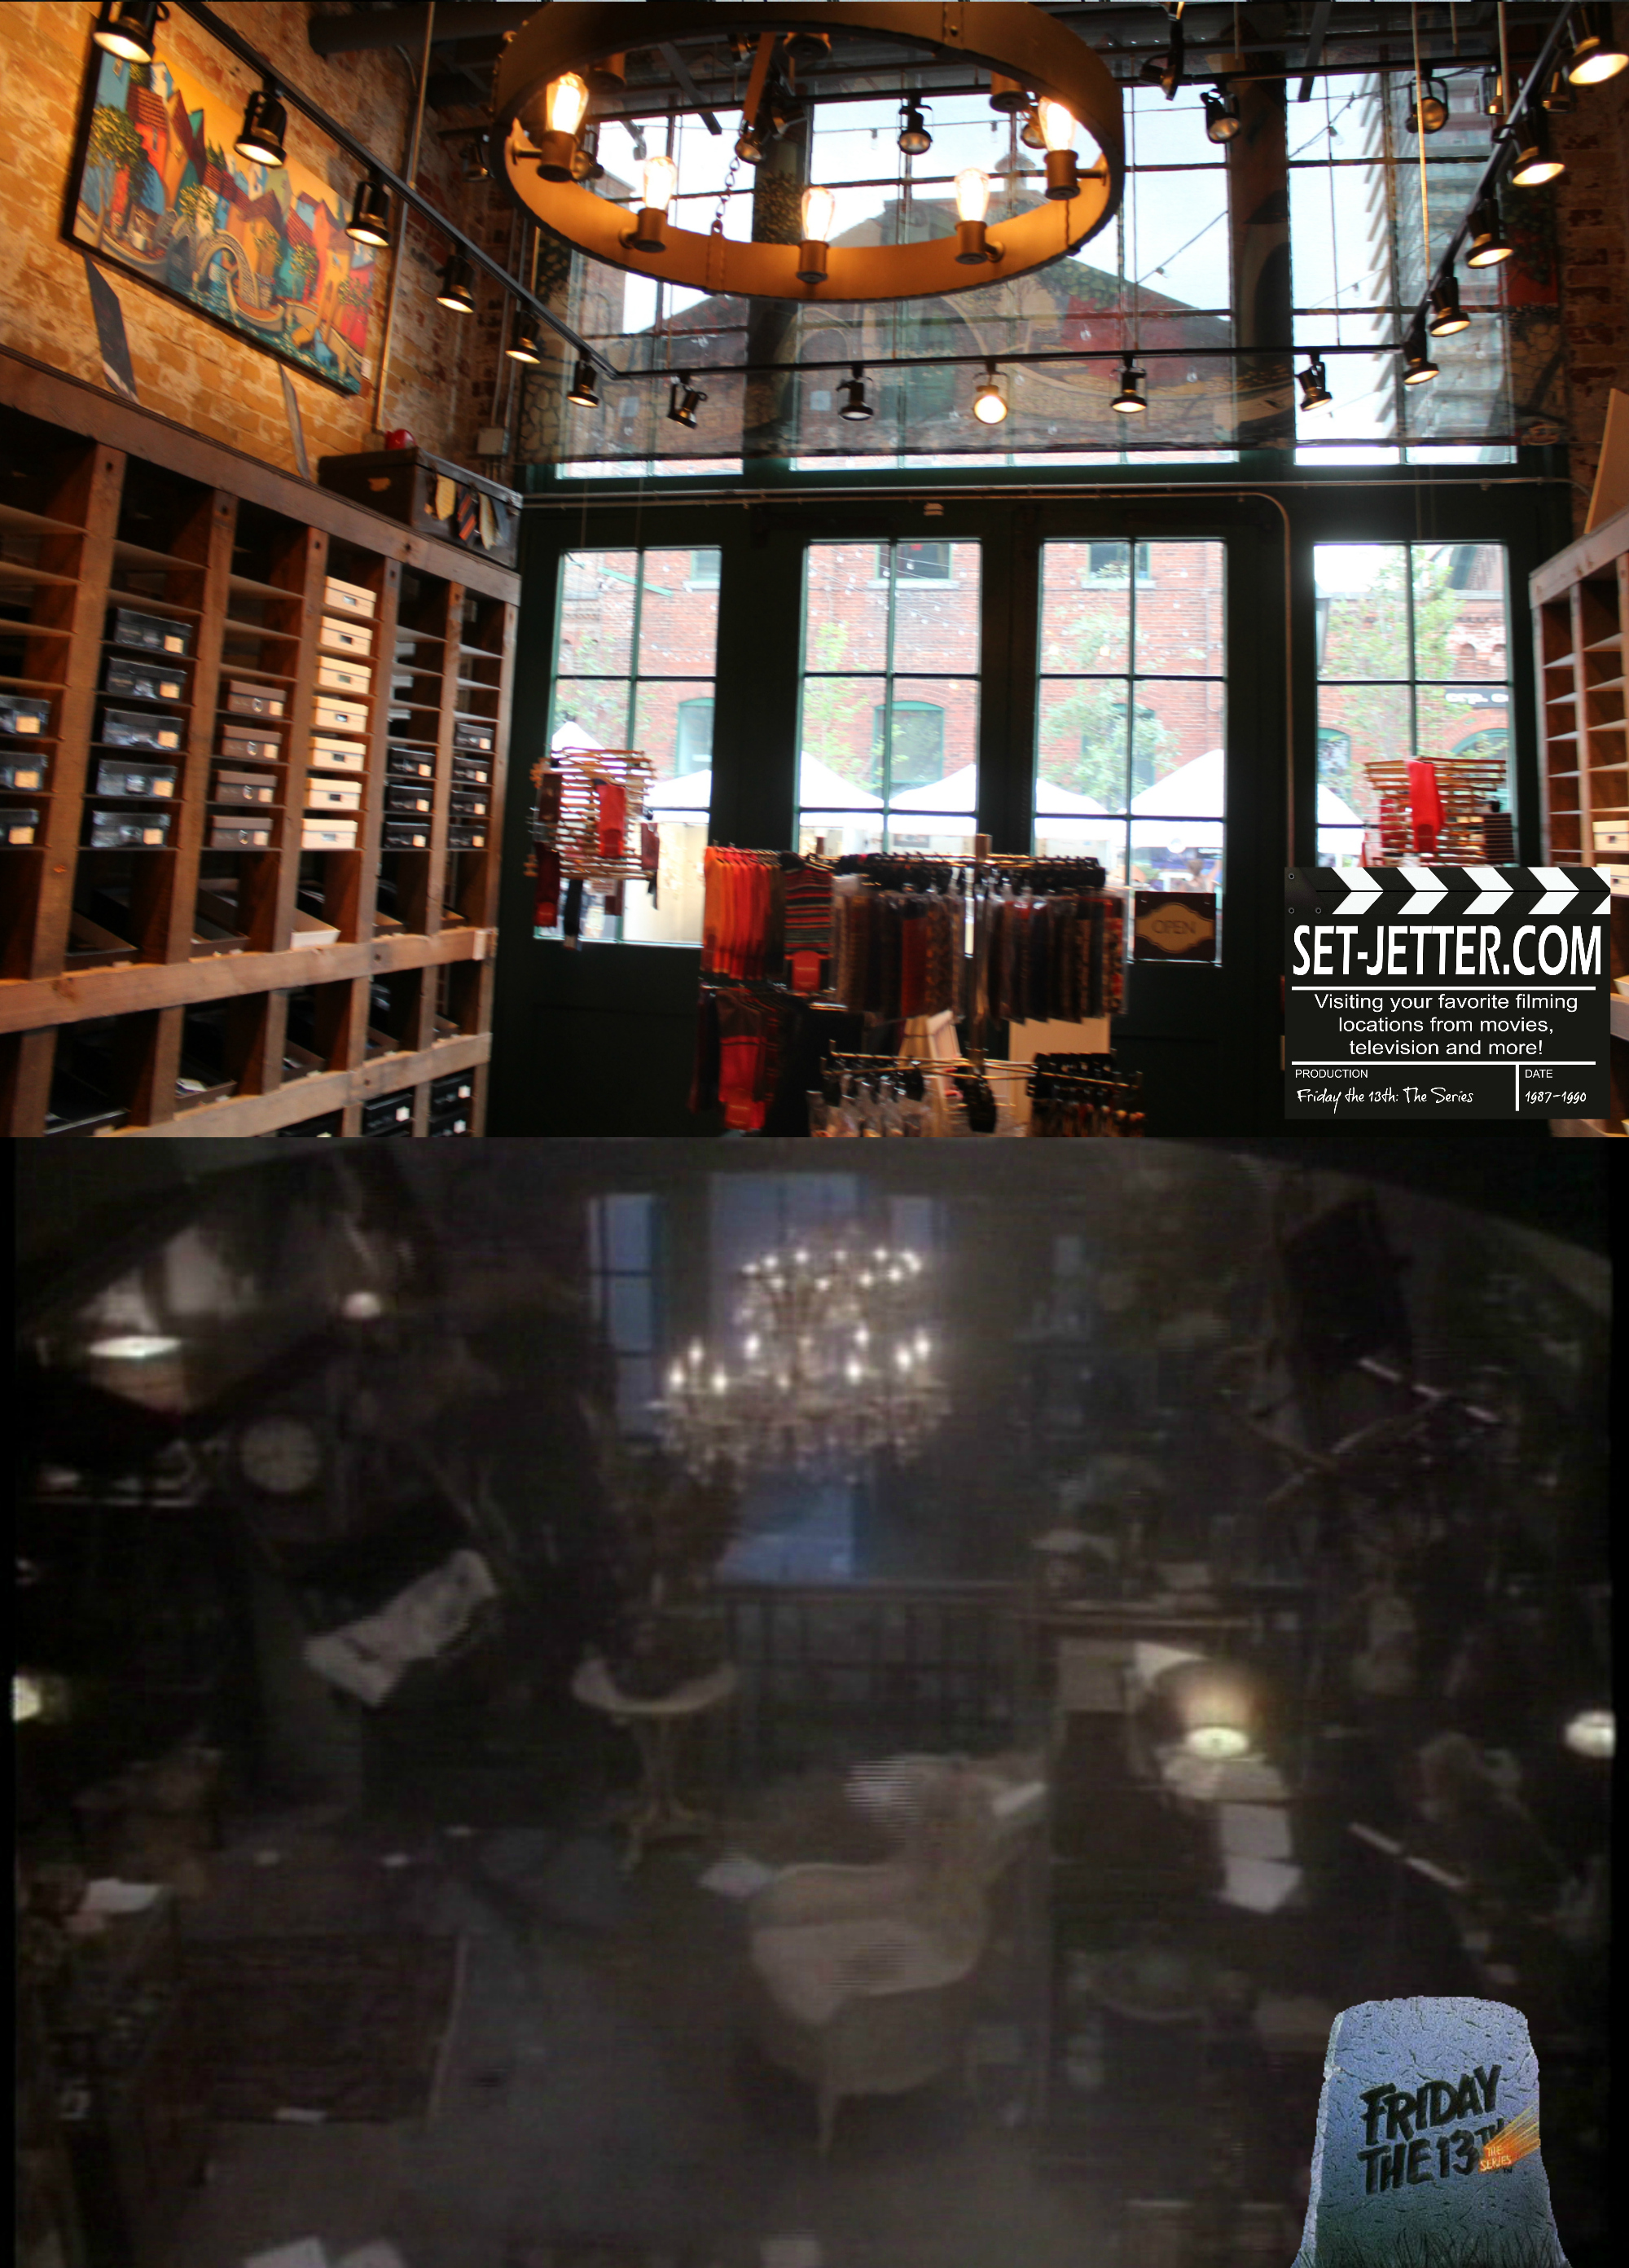 Friday the 13th The Series comparison 19.jpg